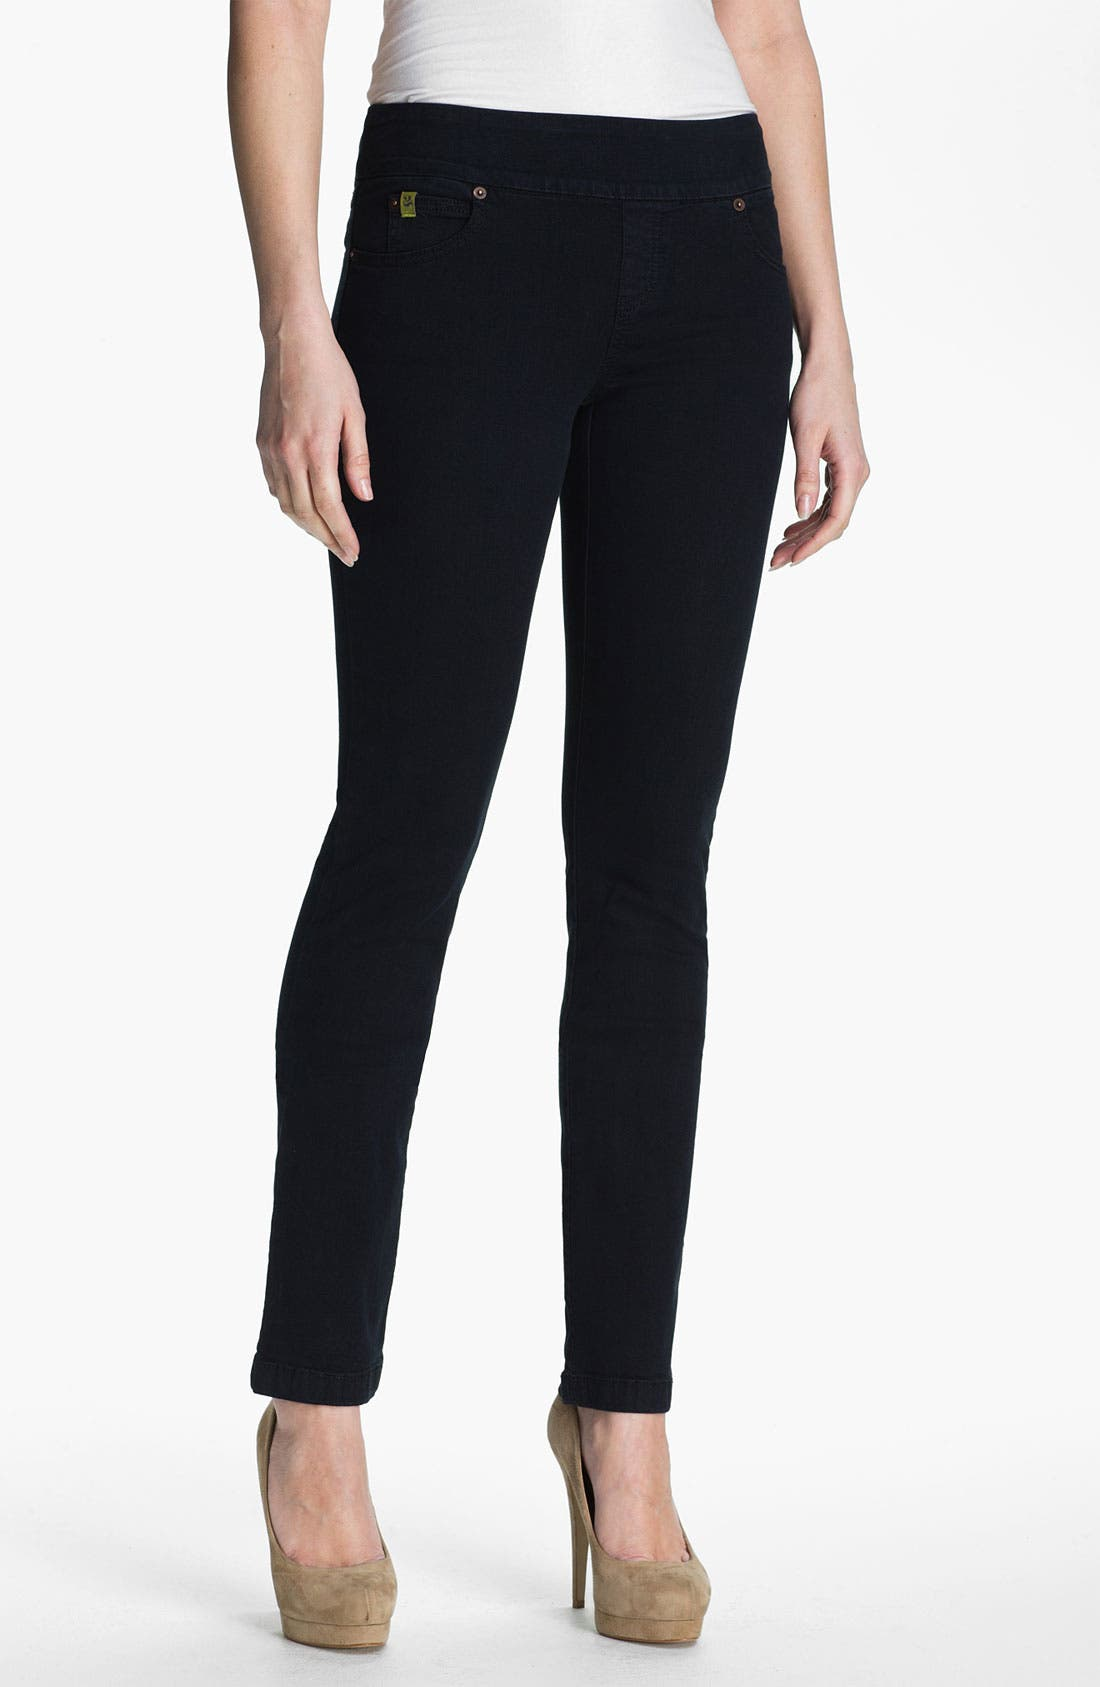 Alternate Image 1 Selected - Second Yoga Jeans Pull-On Skinny Jeans